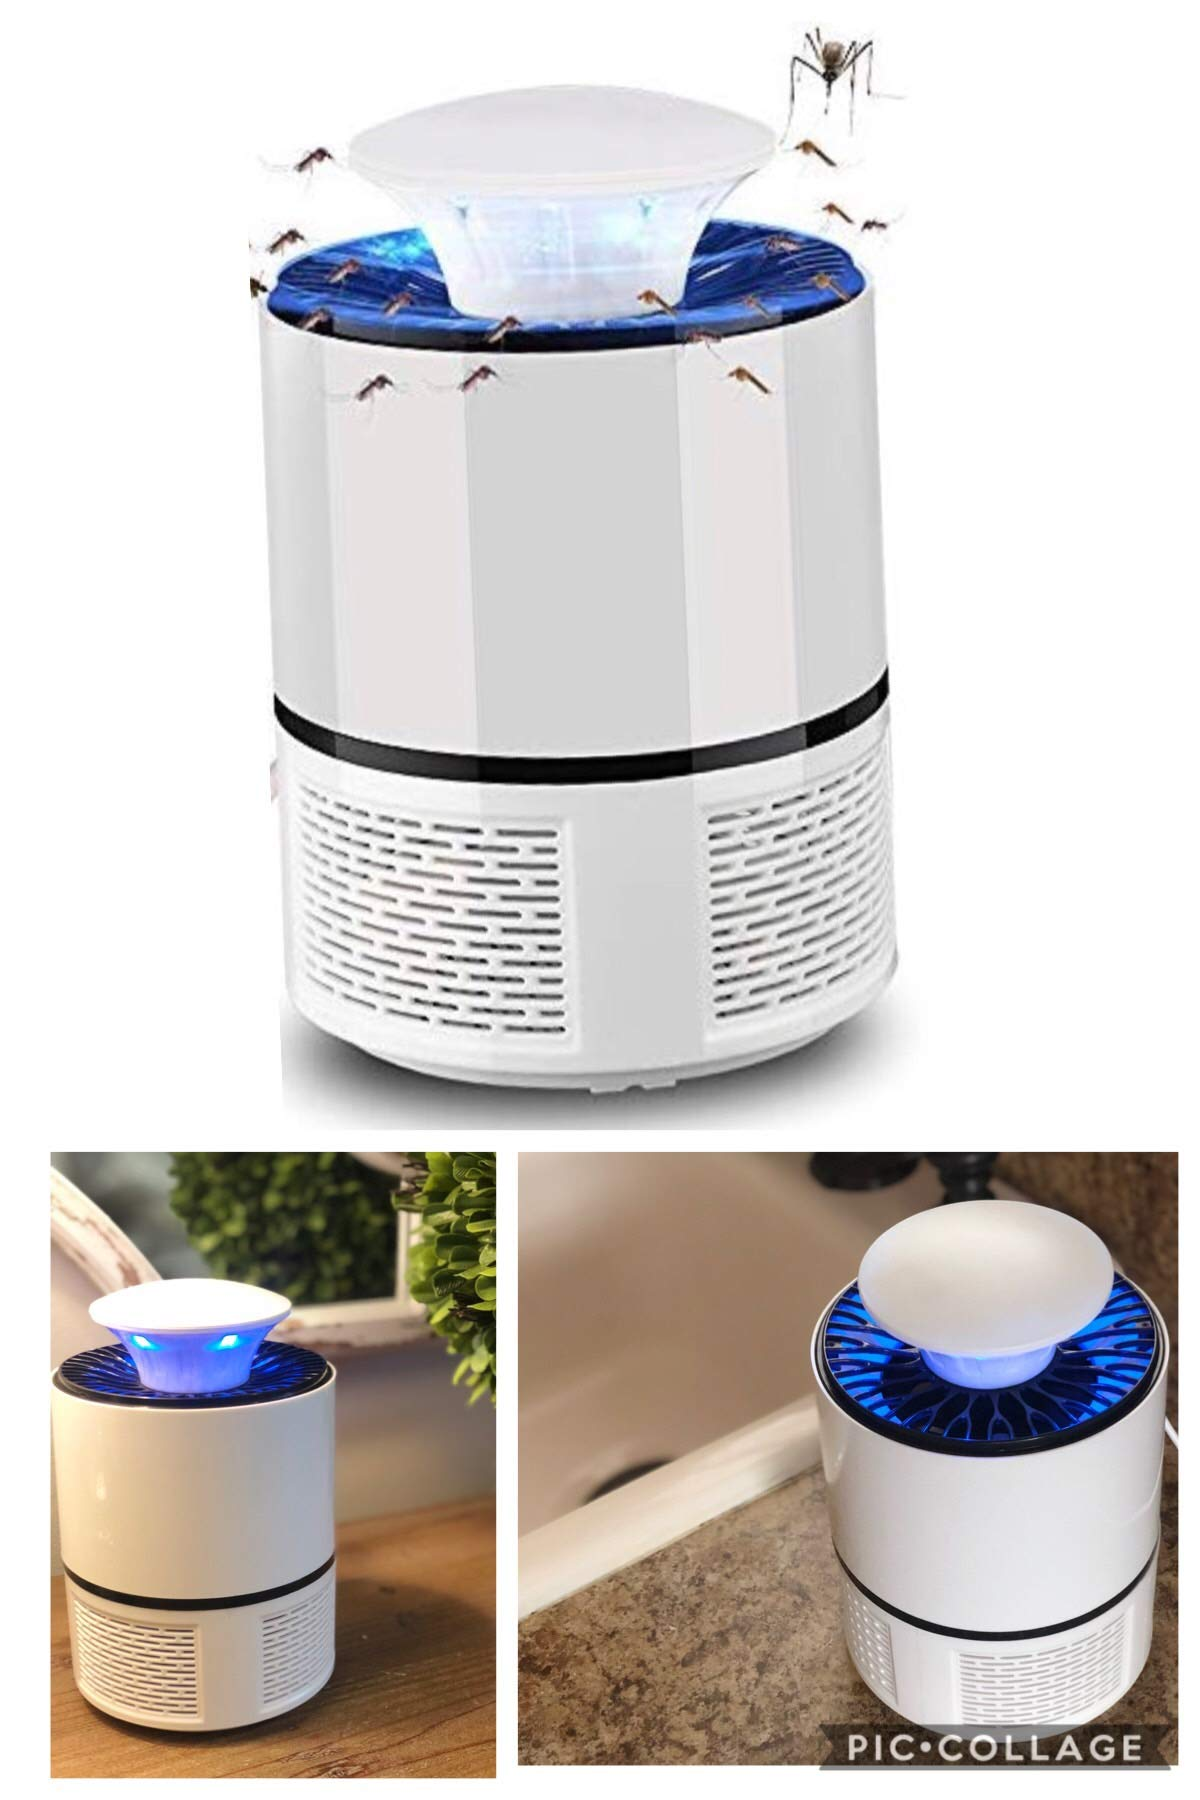 ZBI Electric Outdoor Home Bug Zapper, Indoor Mosquito Killer, Insect Catcher Trap, Fly Pest Control Device with UV Light Lamp for Home and Commercial Use by ZAG